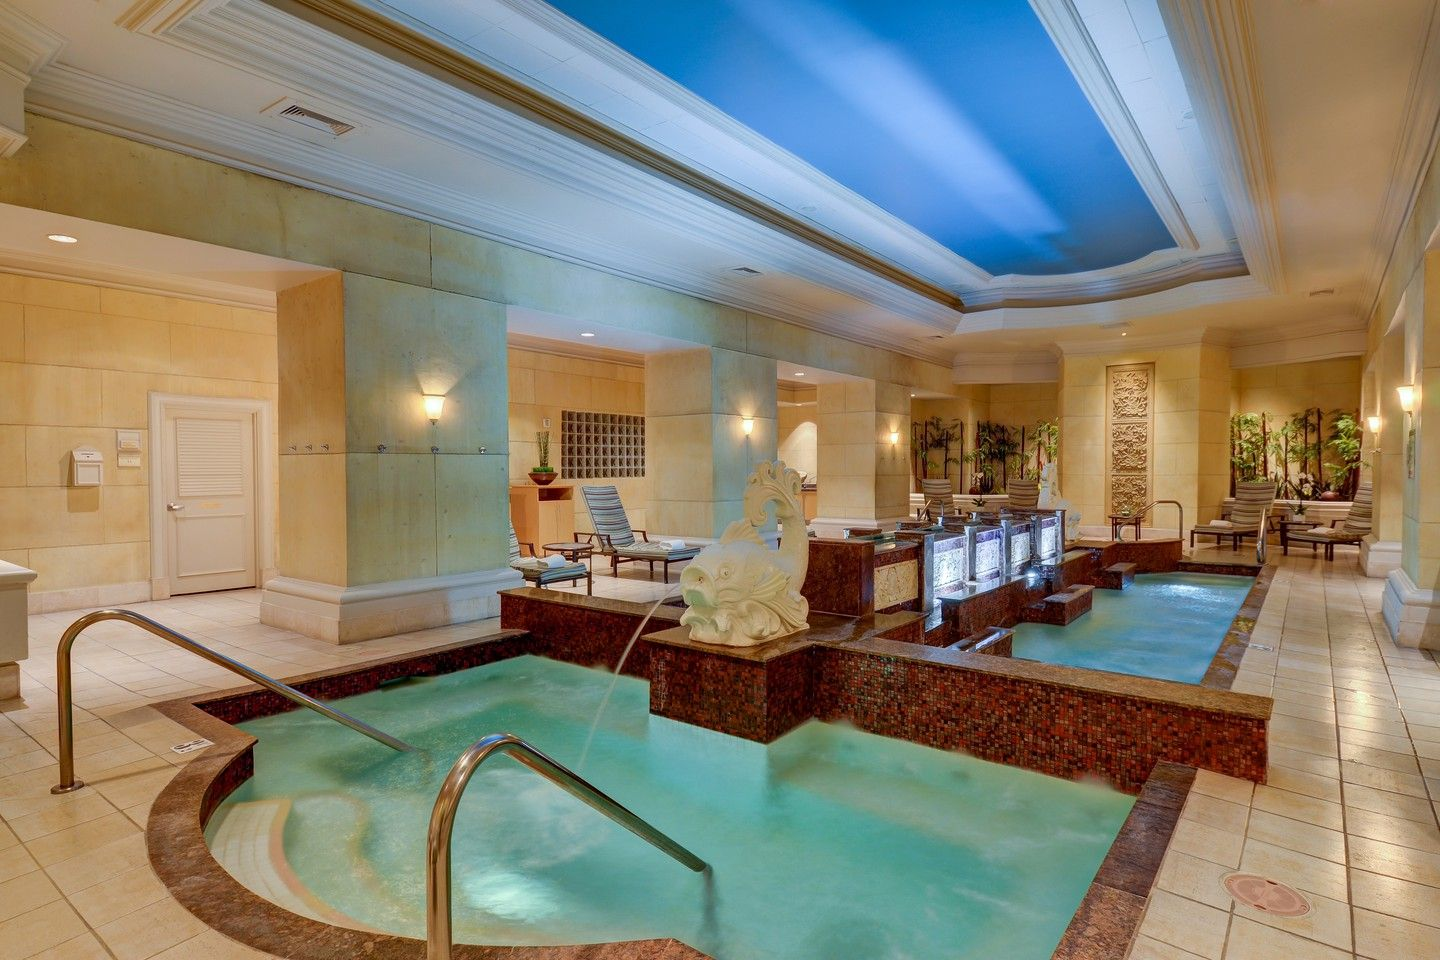 The 10 Best Spas In Las Vegas Nevada Spa Interior Mandalay Bay Resort Mandalay Bay